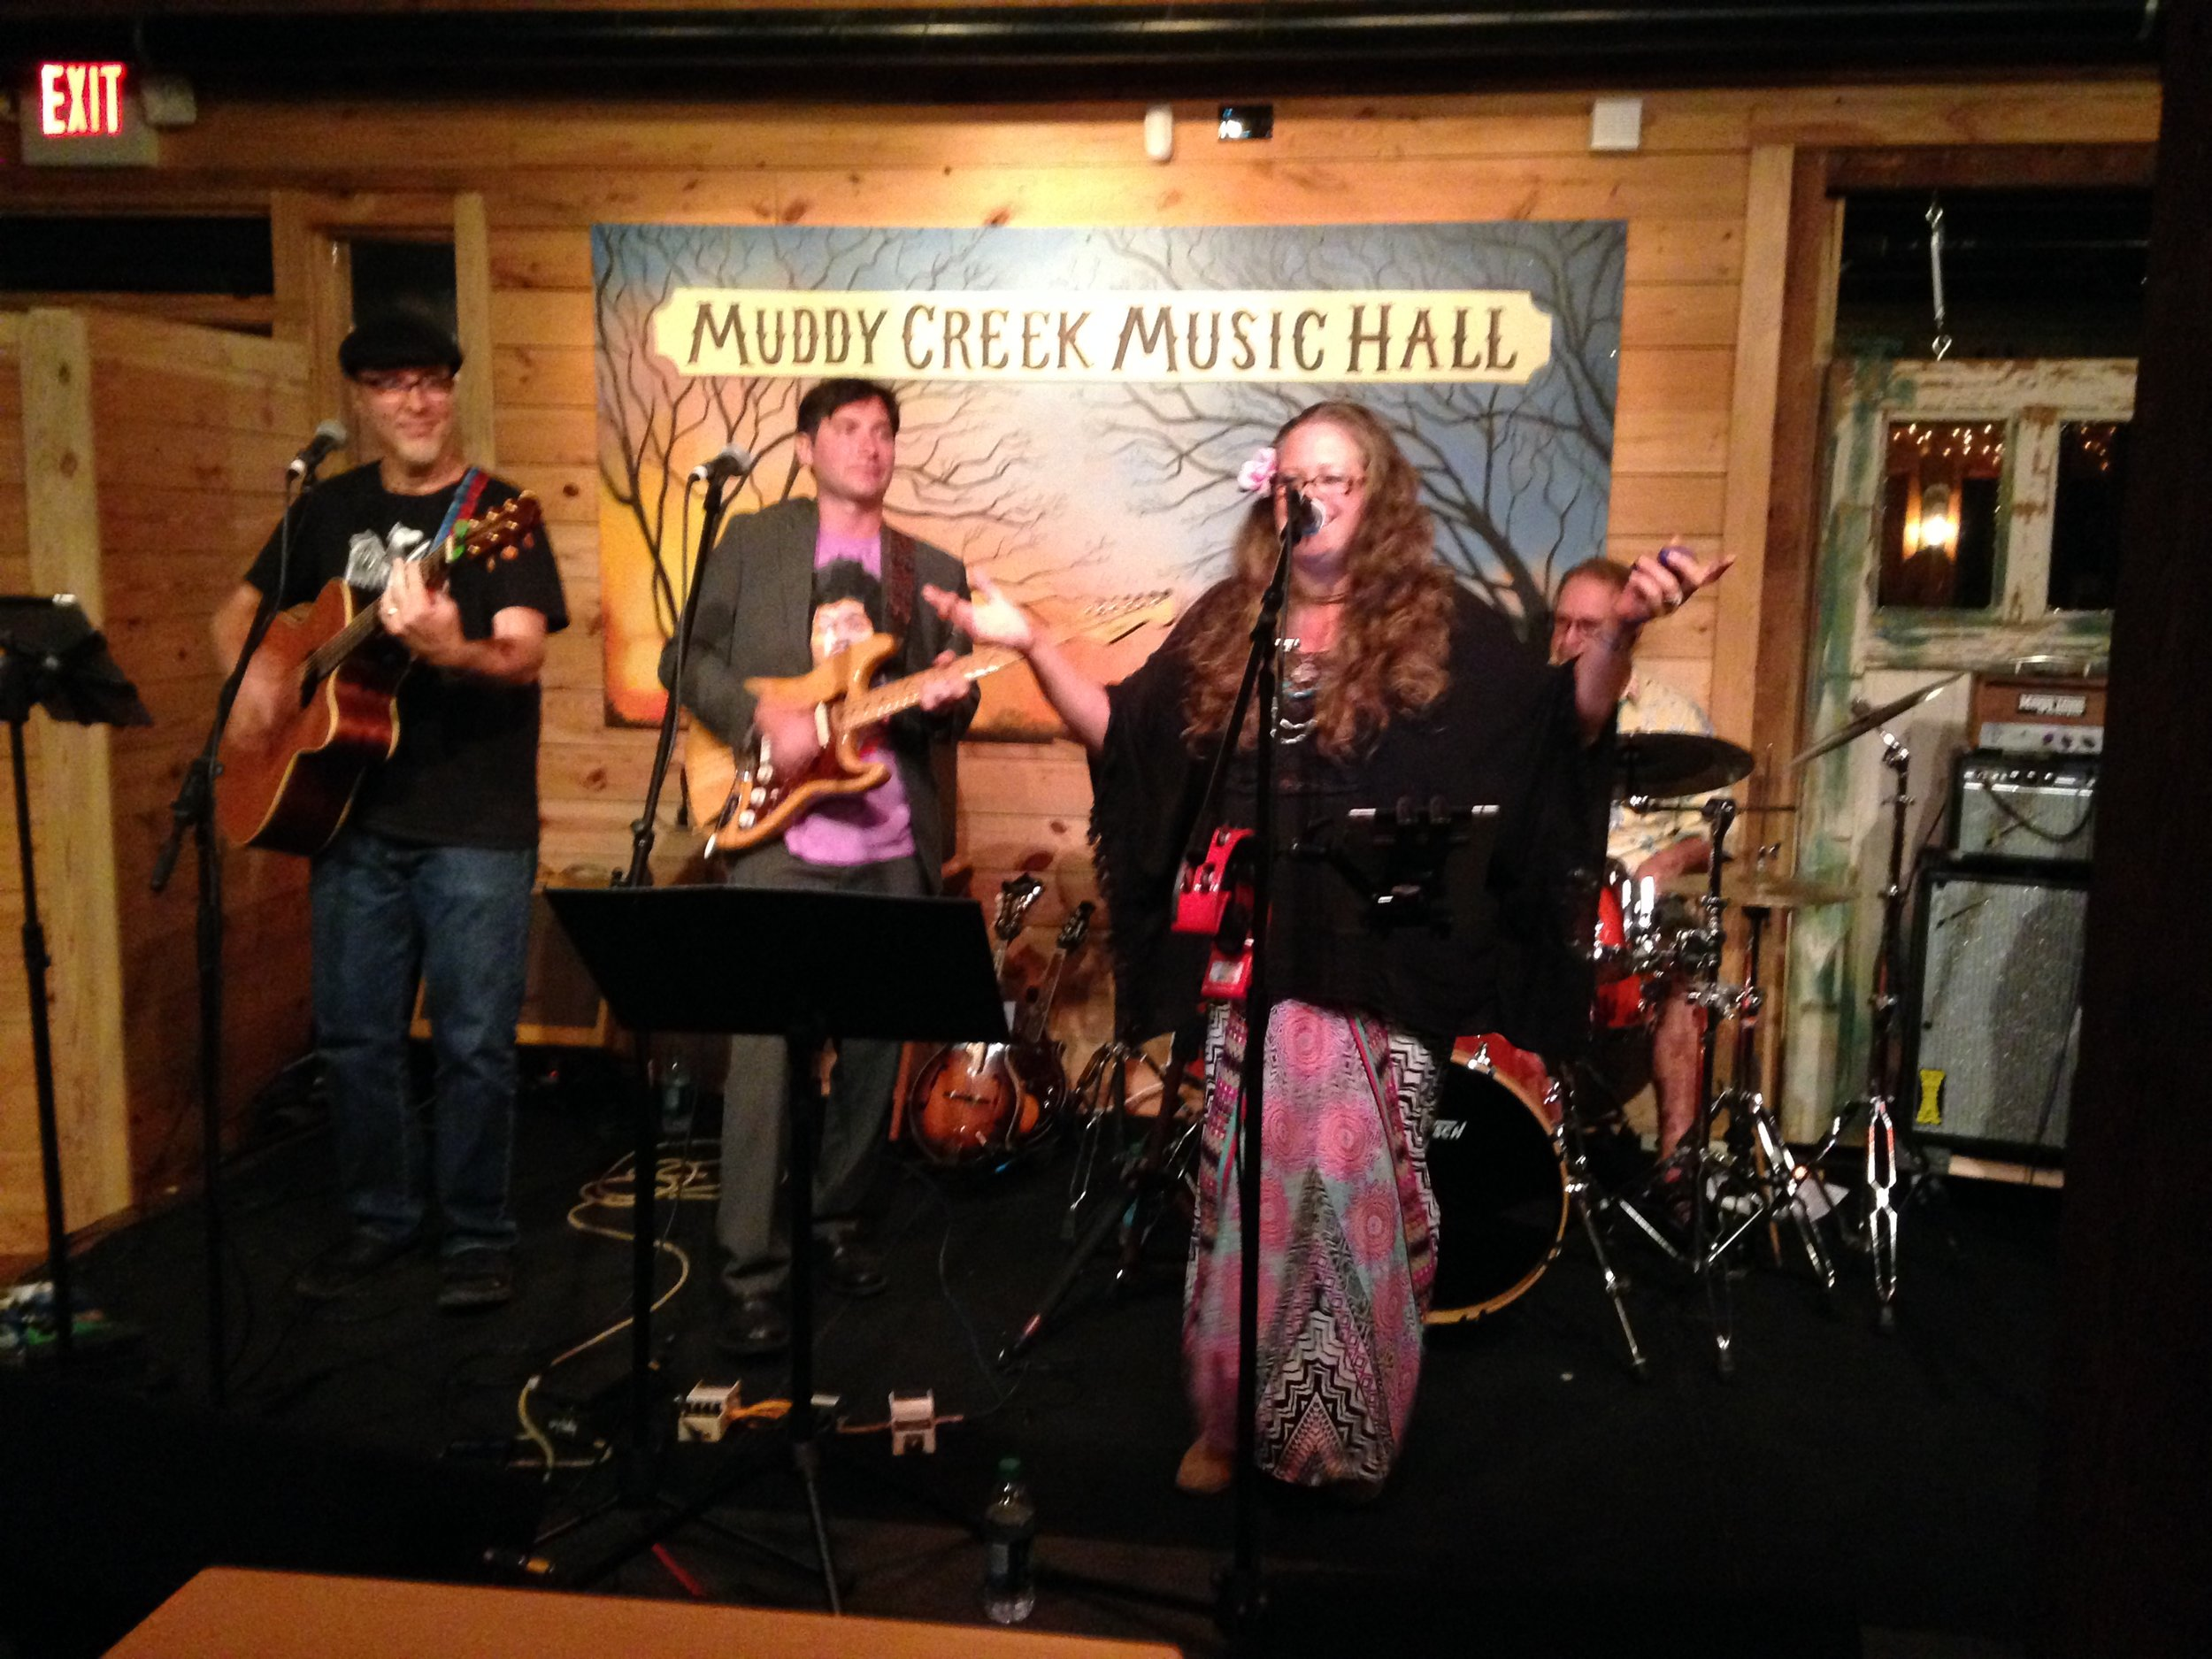 Andrea Templon's Stained Glass Canoe performing at Muddy Creek Music Hall in Bethania, North Carolina.